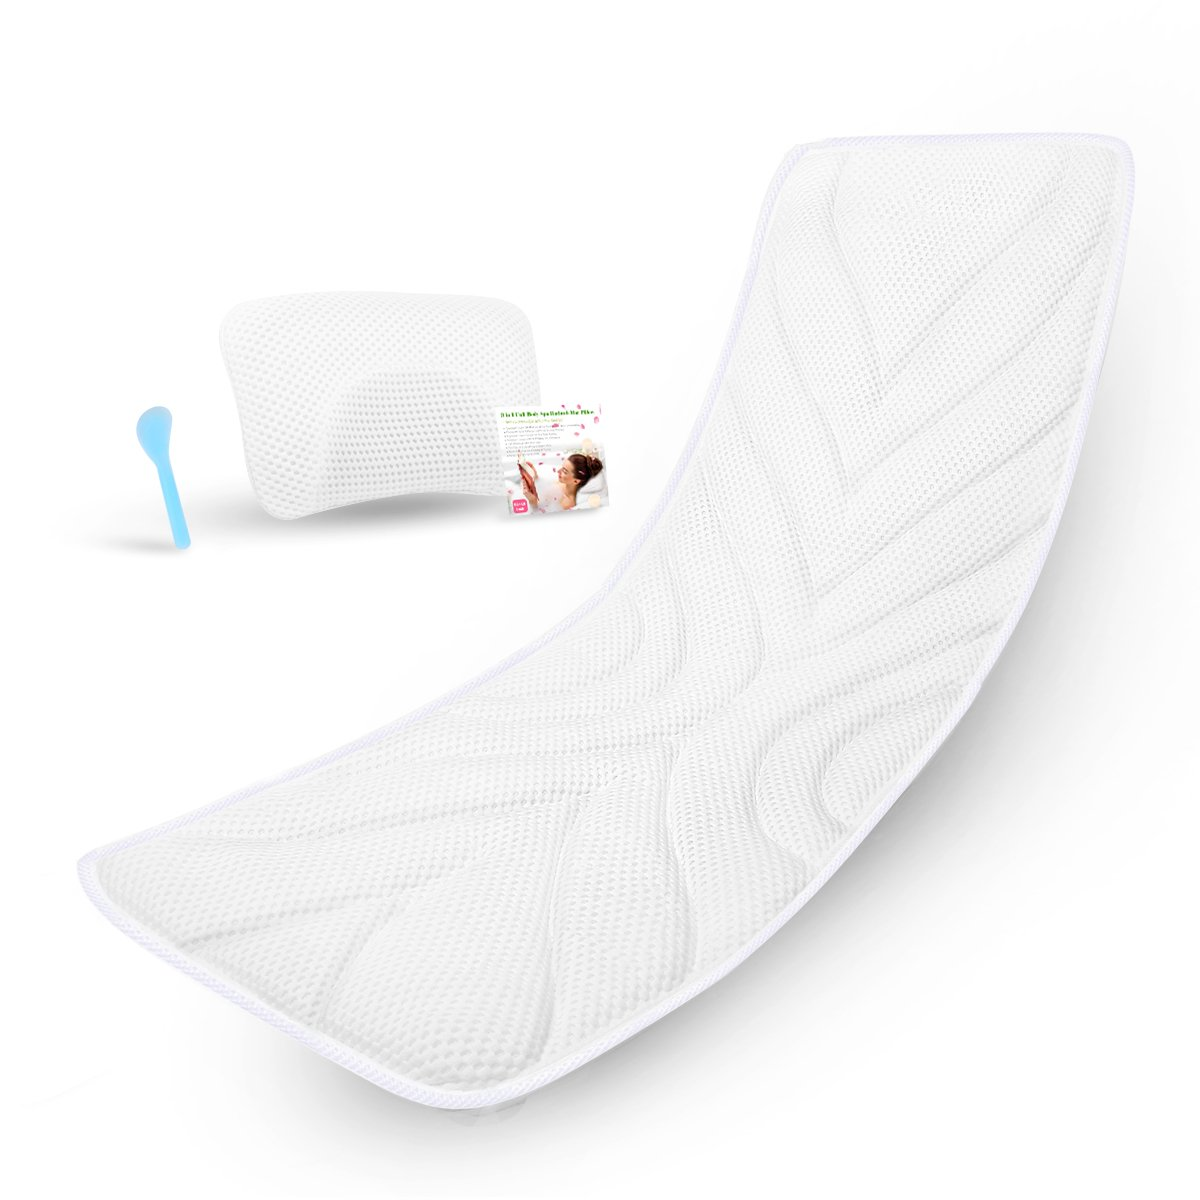 Full Body Spa Bath Pillow Mat, Luxury Soft Quilted Bathtub Cushion Mattress with Large Non Slip Suction Cups, Comfort Head Rest and Back Tailbone Support, Quick Drying and Anti Bacteria Antart